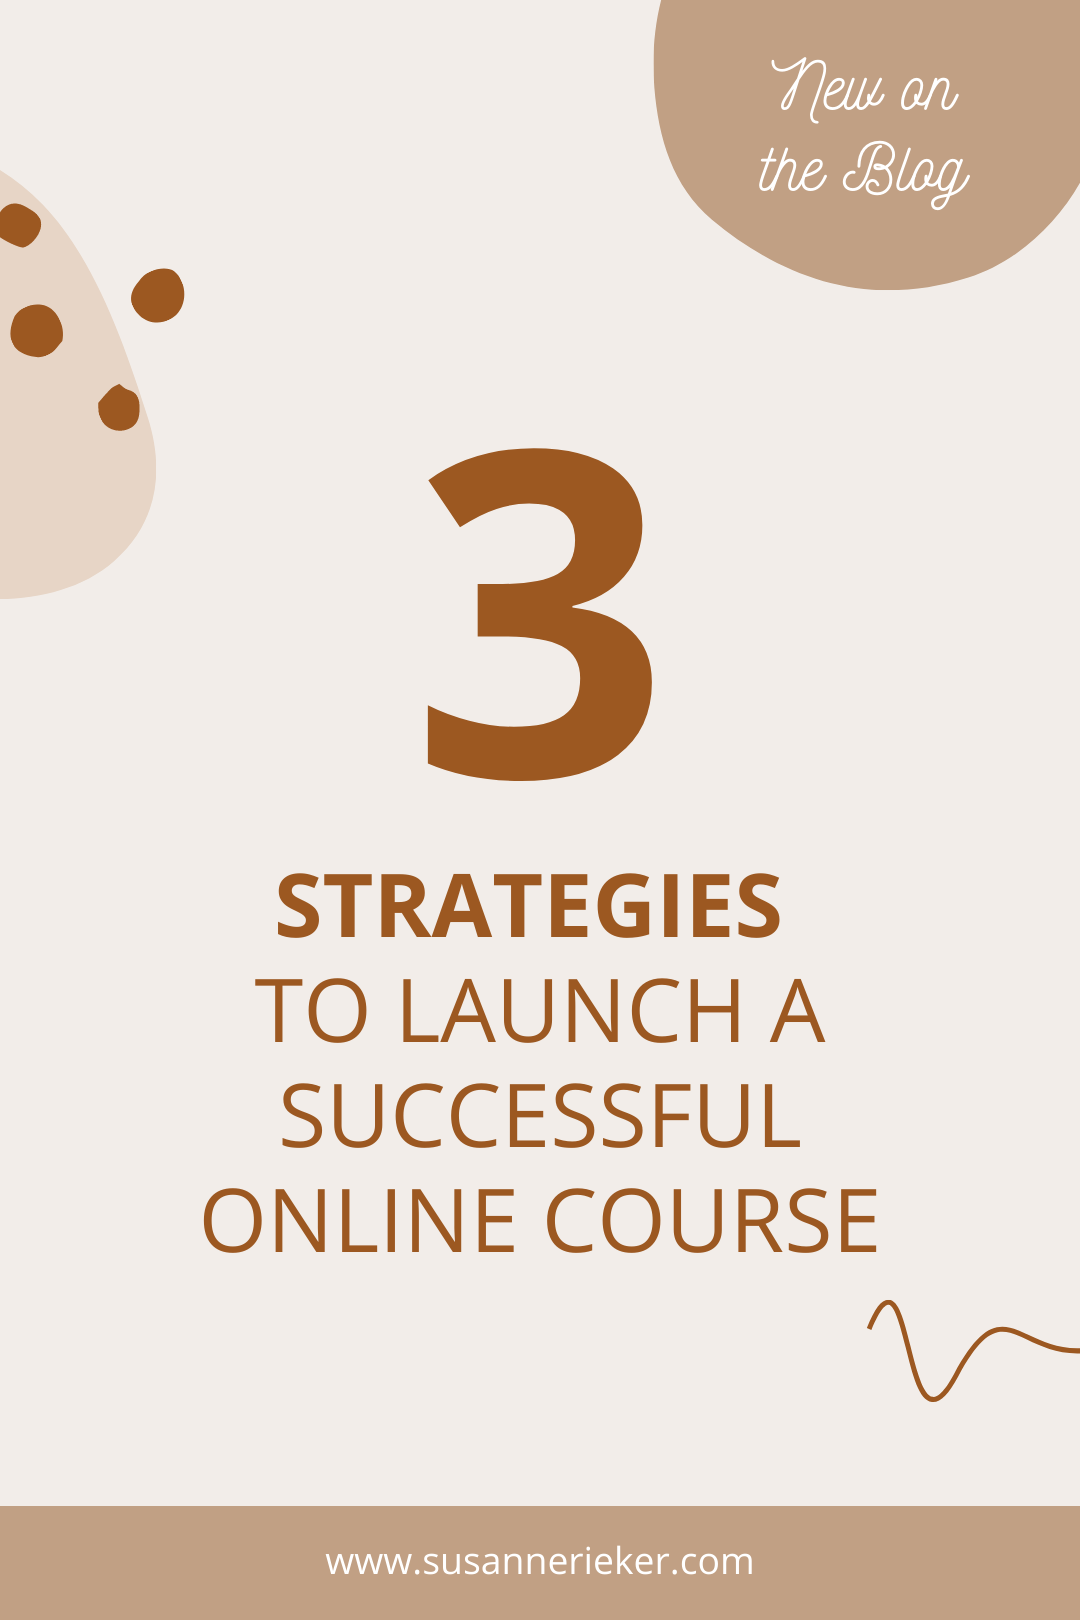 3 Strategies to launch a successful online course